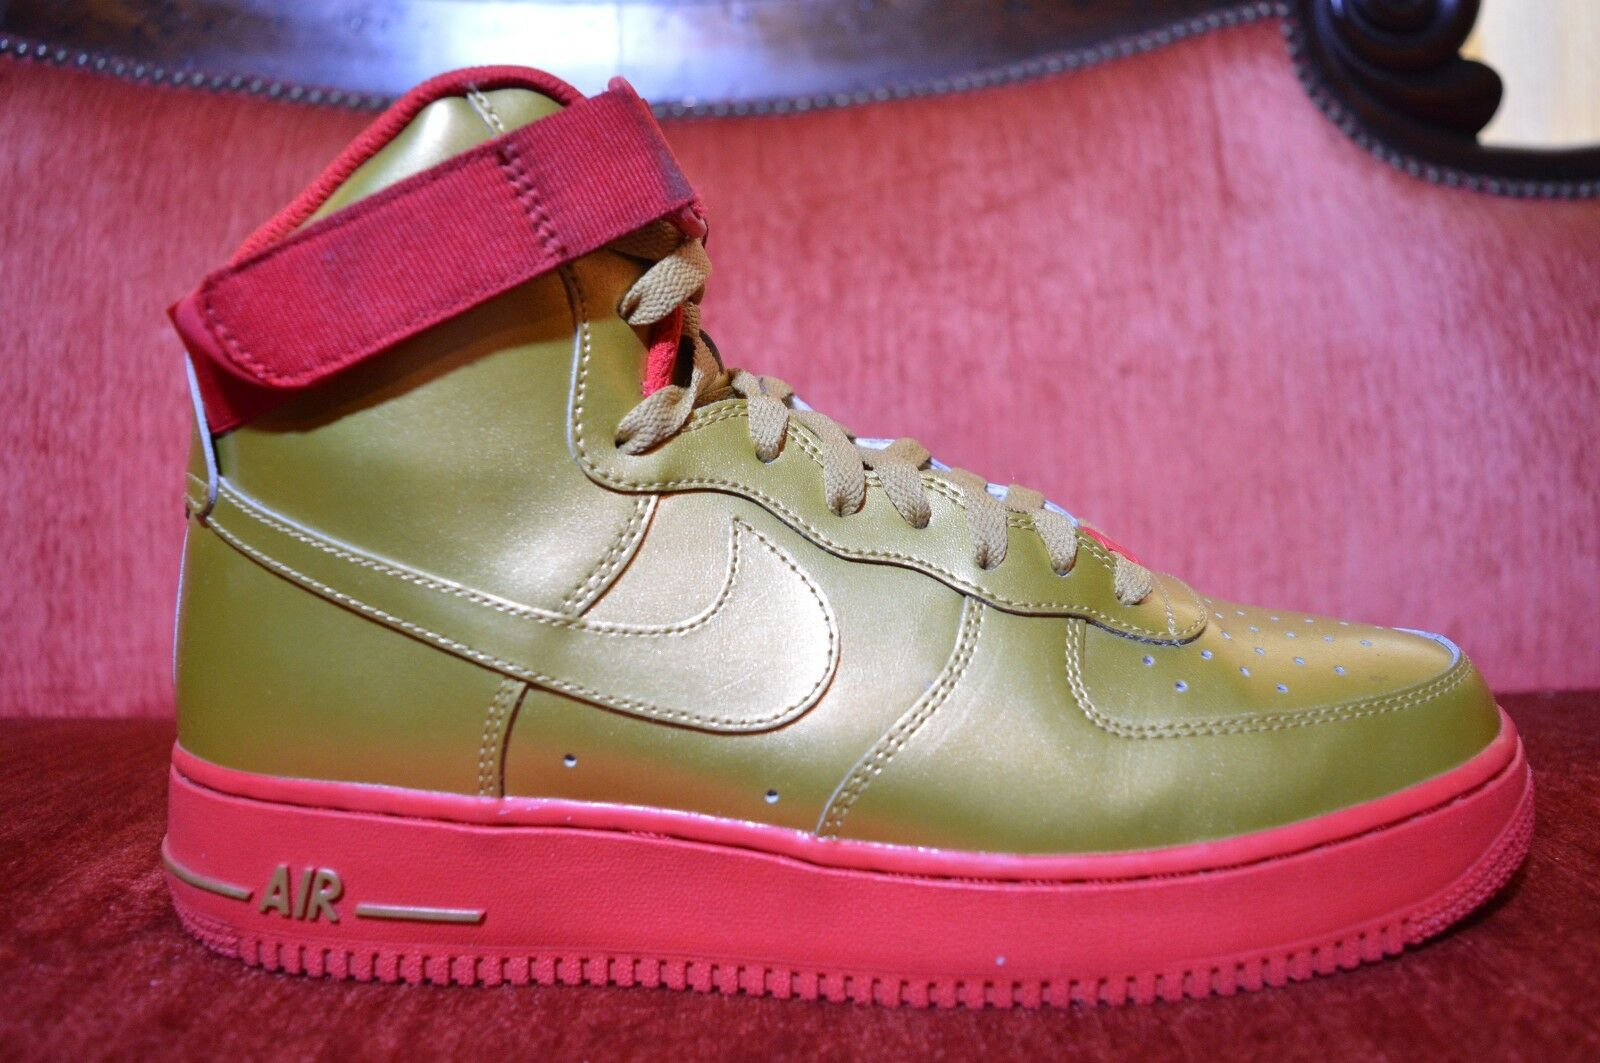 Nike Air Force 1 High iD Metallic gold Red Blood AF1 Premium Size 10